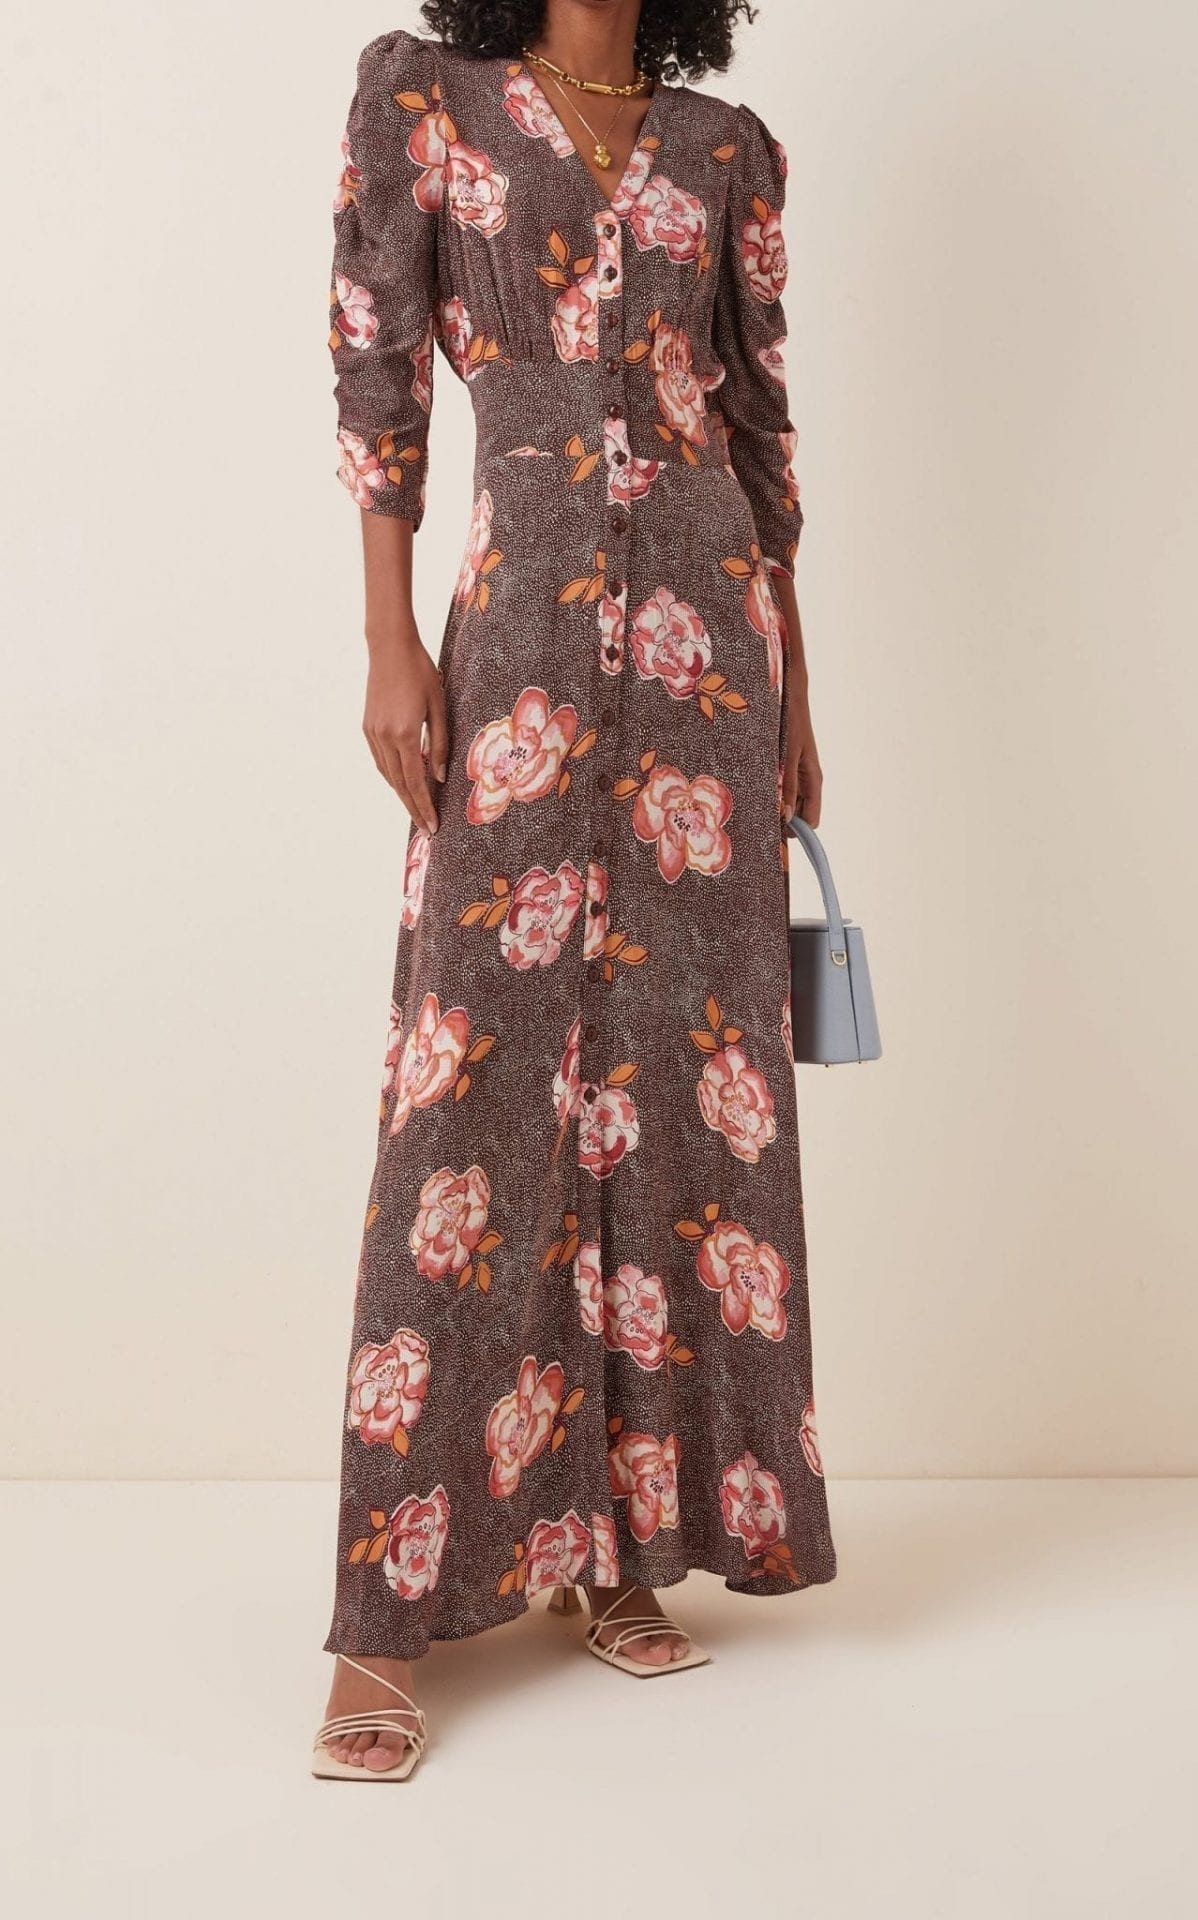 BYTIMO Spring Printed Crepe Maxi Dress